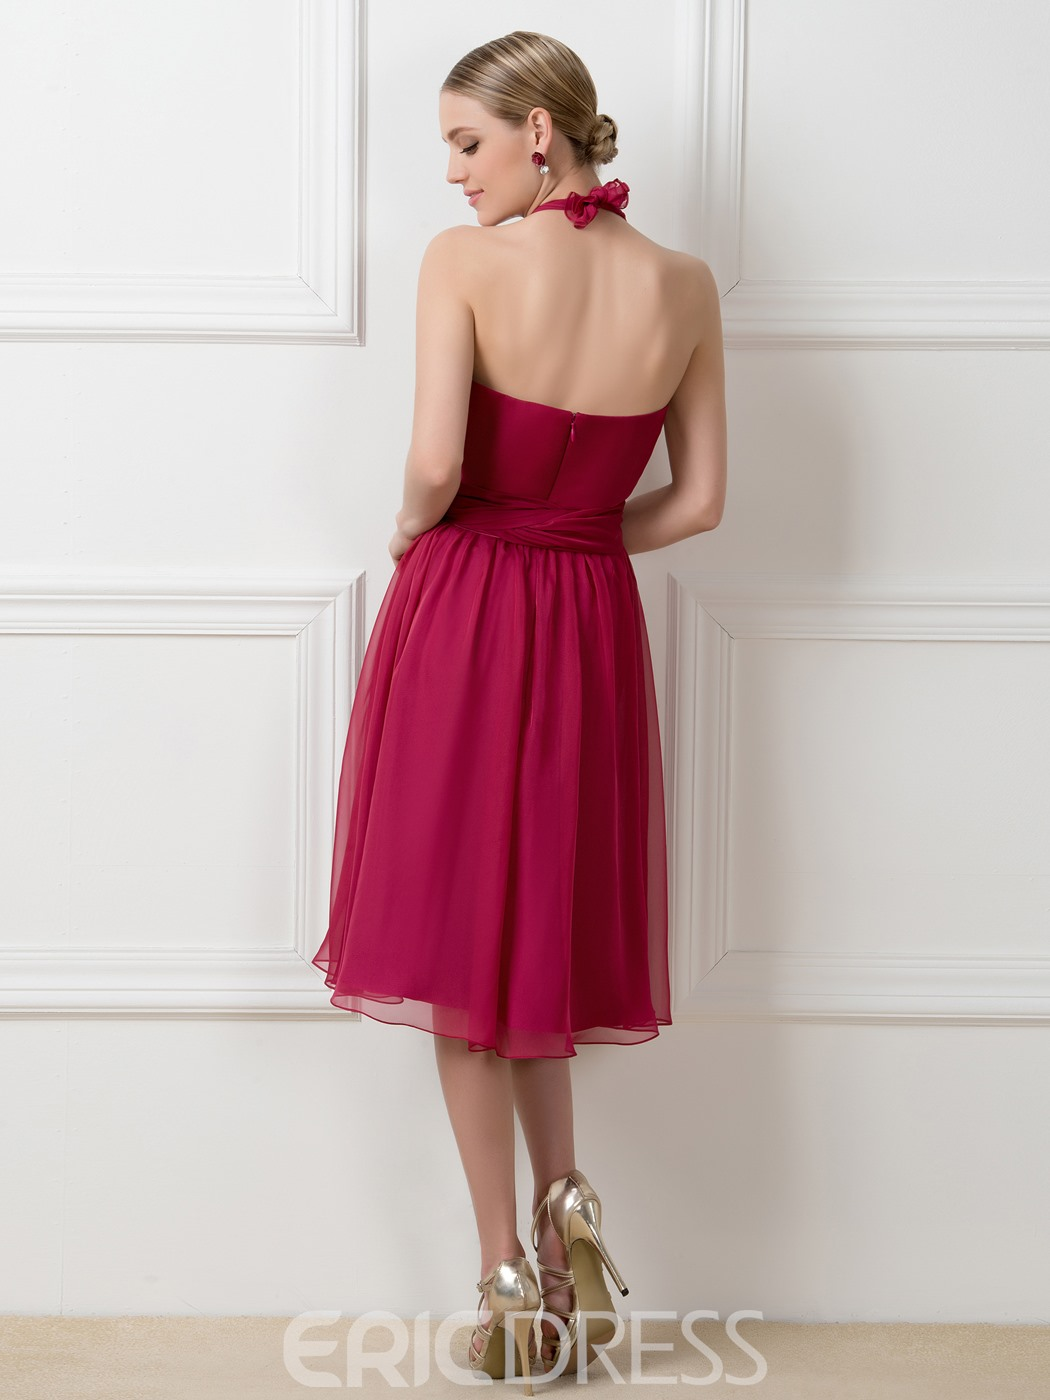 Ericdress Stylish A-Line Tea-Length Convertible Bridesmaid Dress